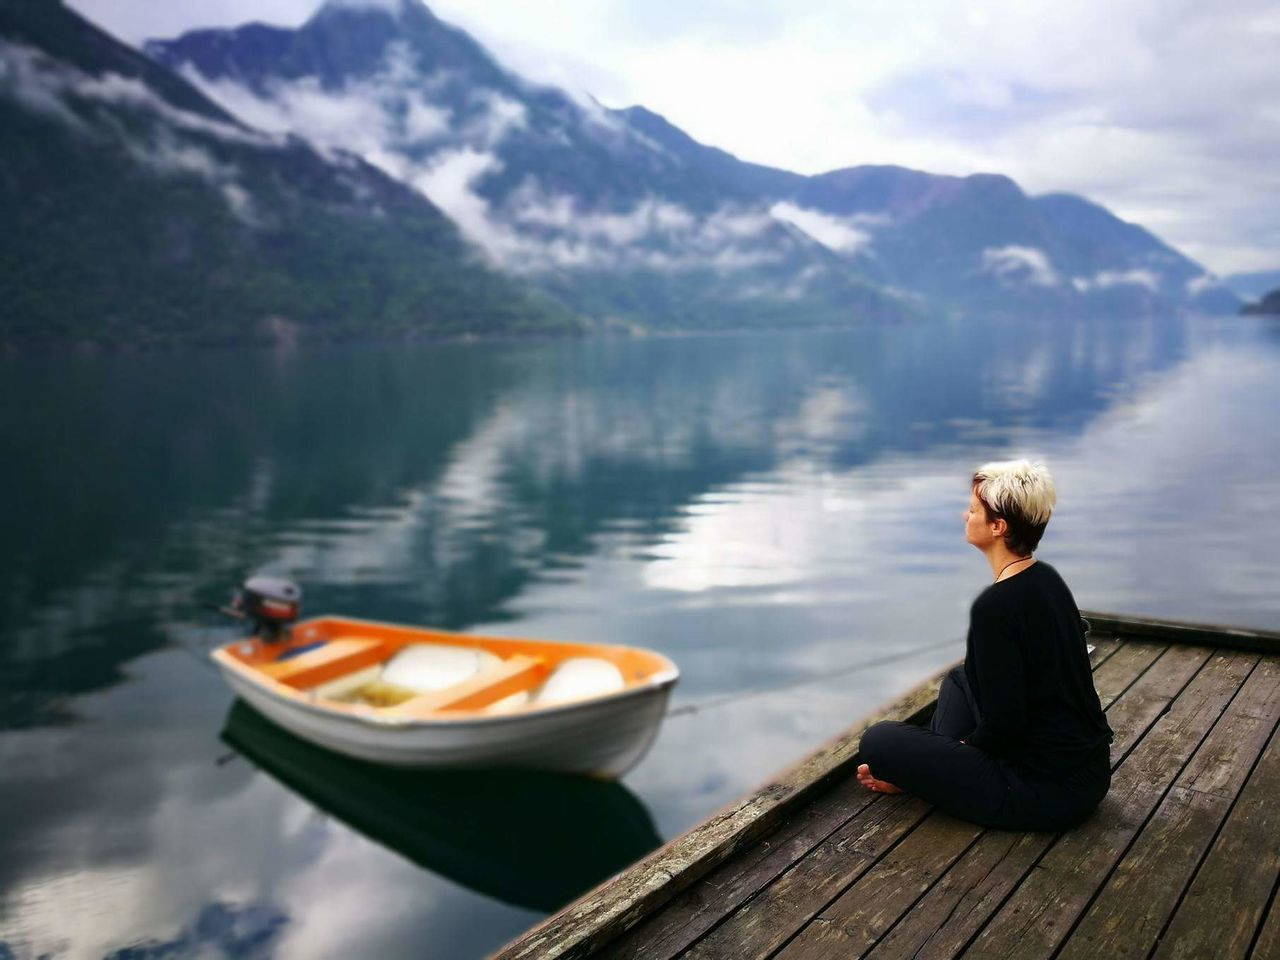 mountain, lake, water, nature, mountain range, sitting, day, rear view, nautical vessel, beauty in nature, leisure activity, scenics, outdoors, tranquility, tranquil scene, one person, real people, full length, blond hair, oar, sky, adult, tree, young adult, adults only, people